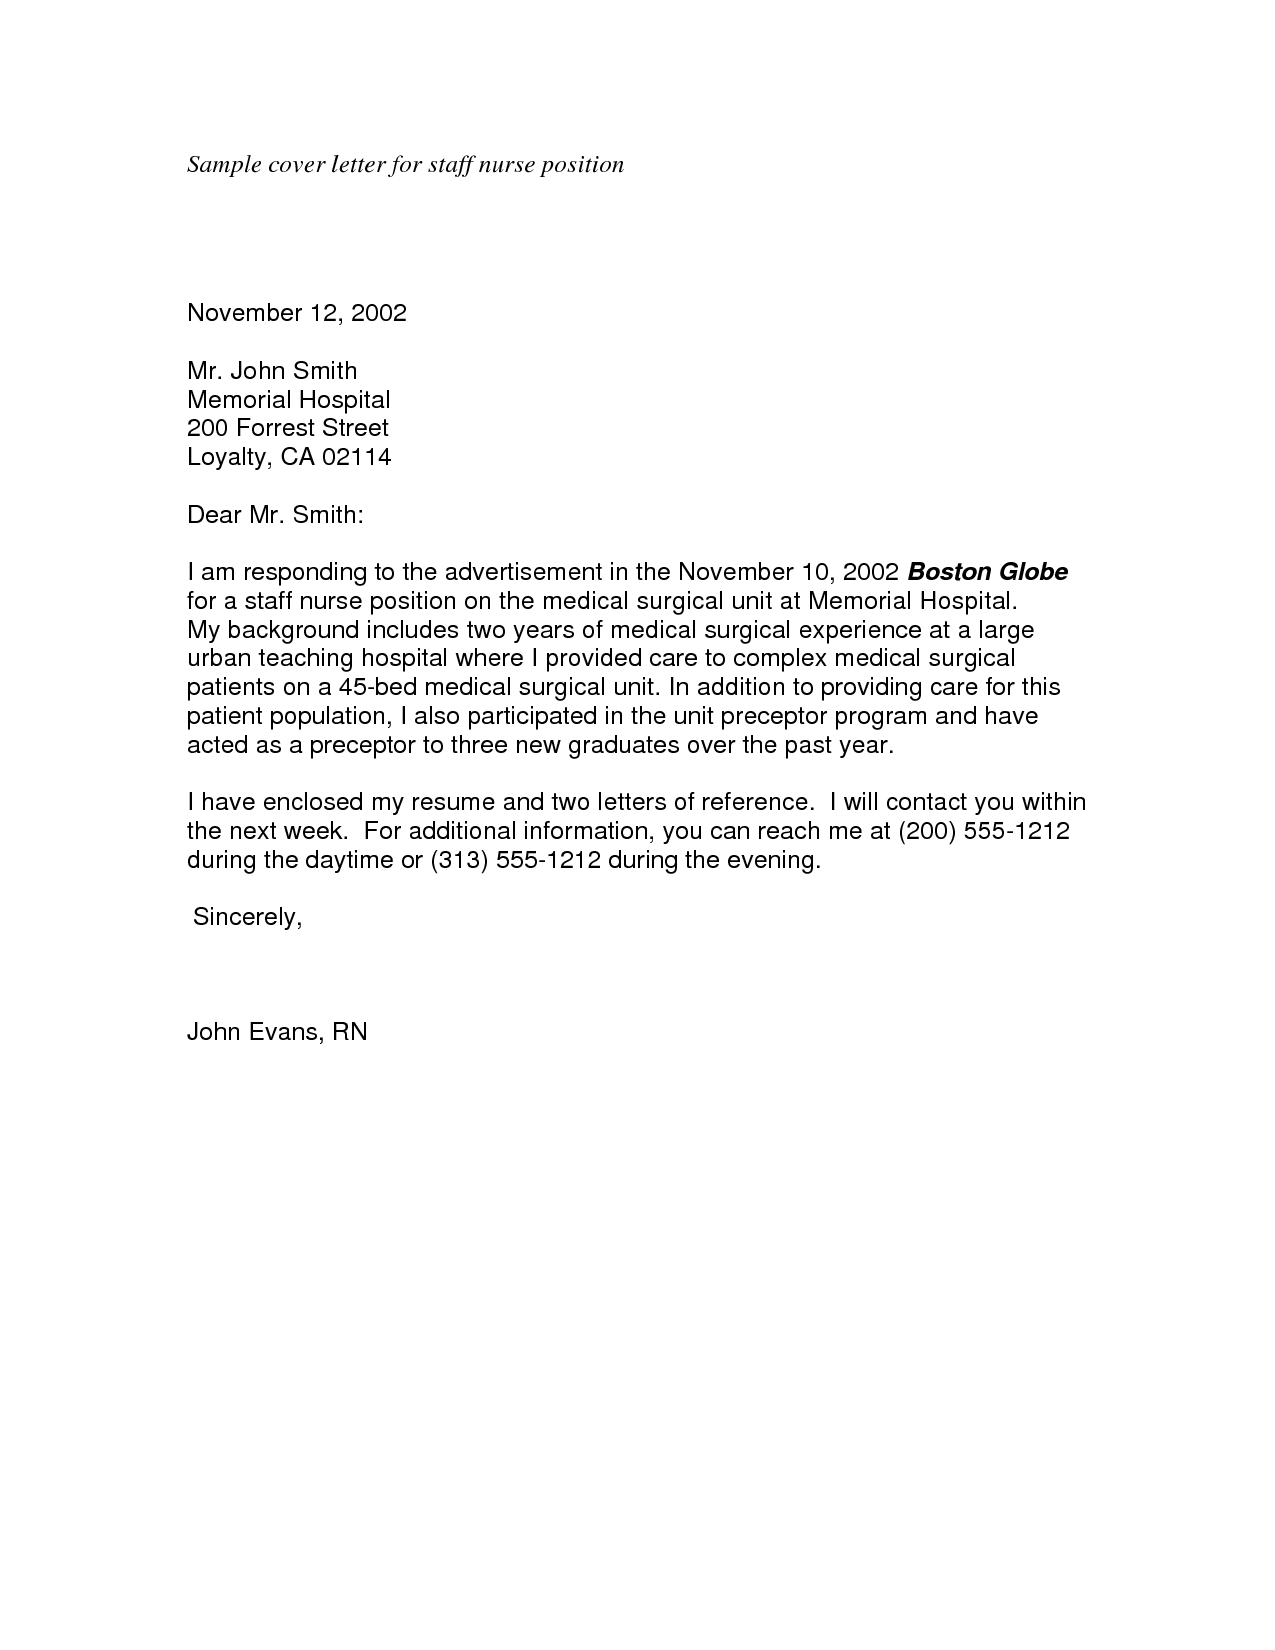 JOB APPLICATION COVER LETTER Easy Template PixSimple Cover